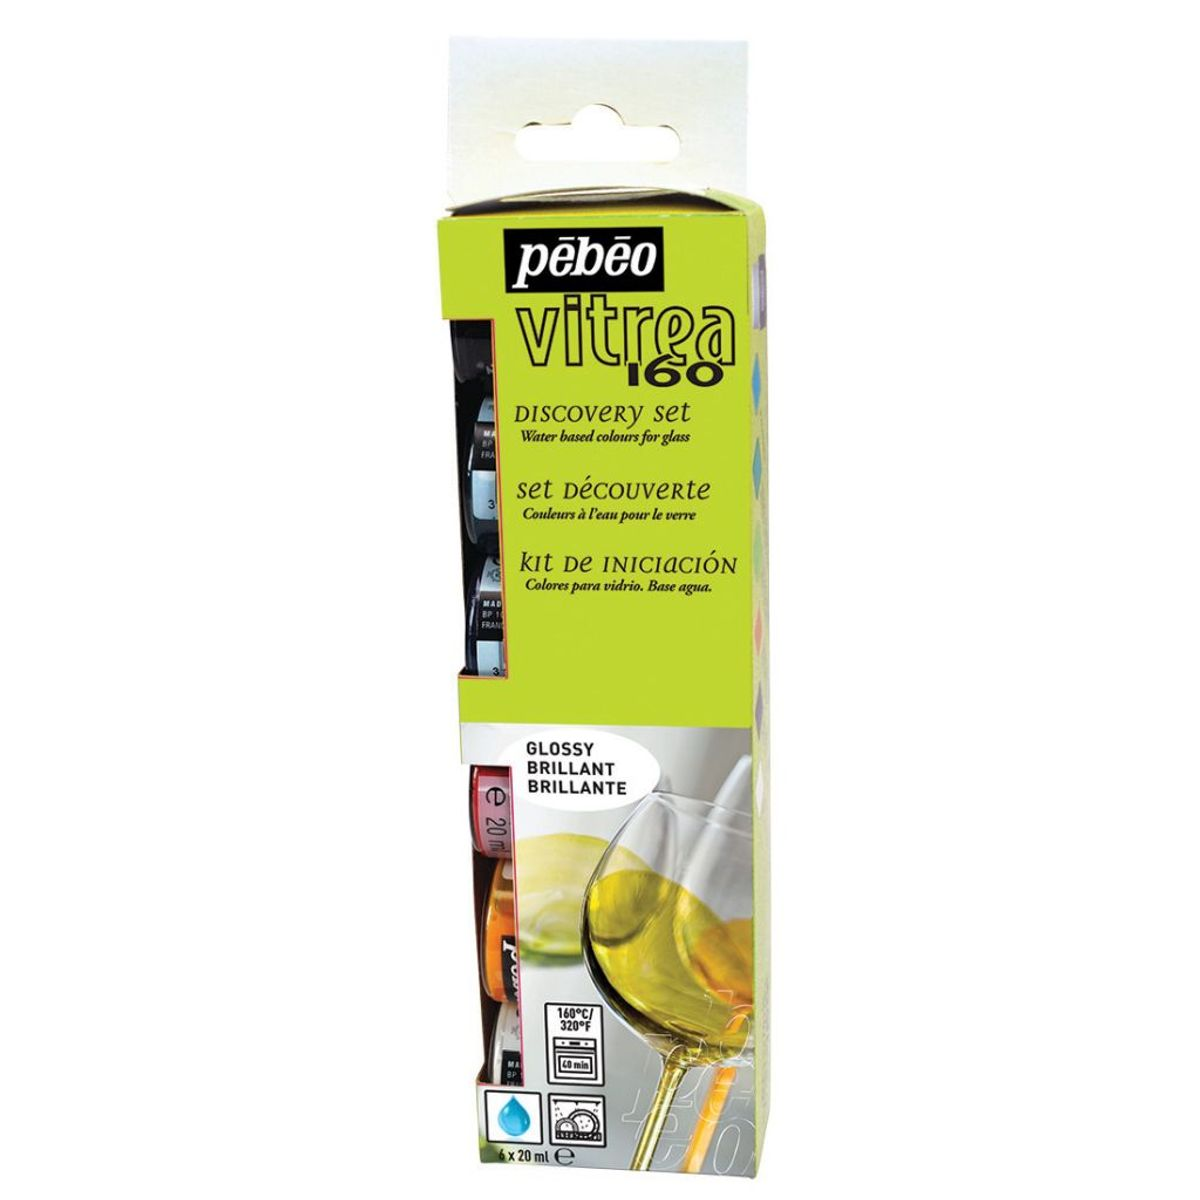 pebeo vitrea 160 glass paint instructions